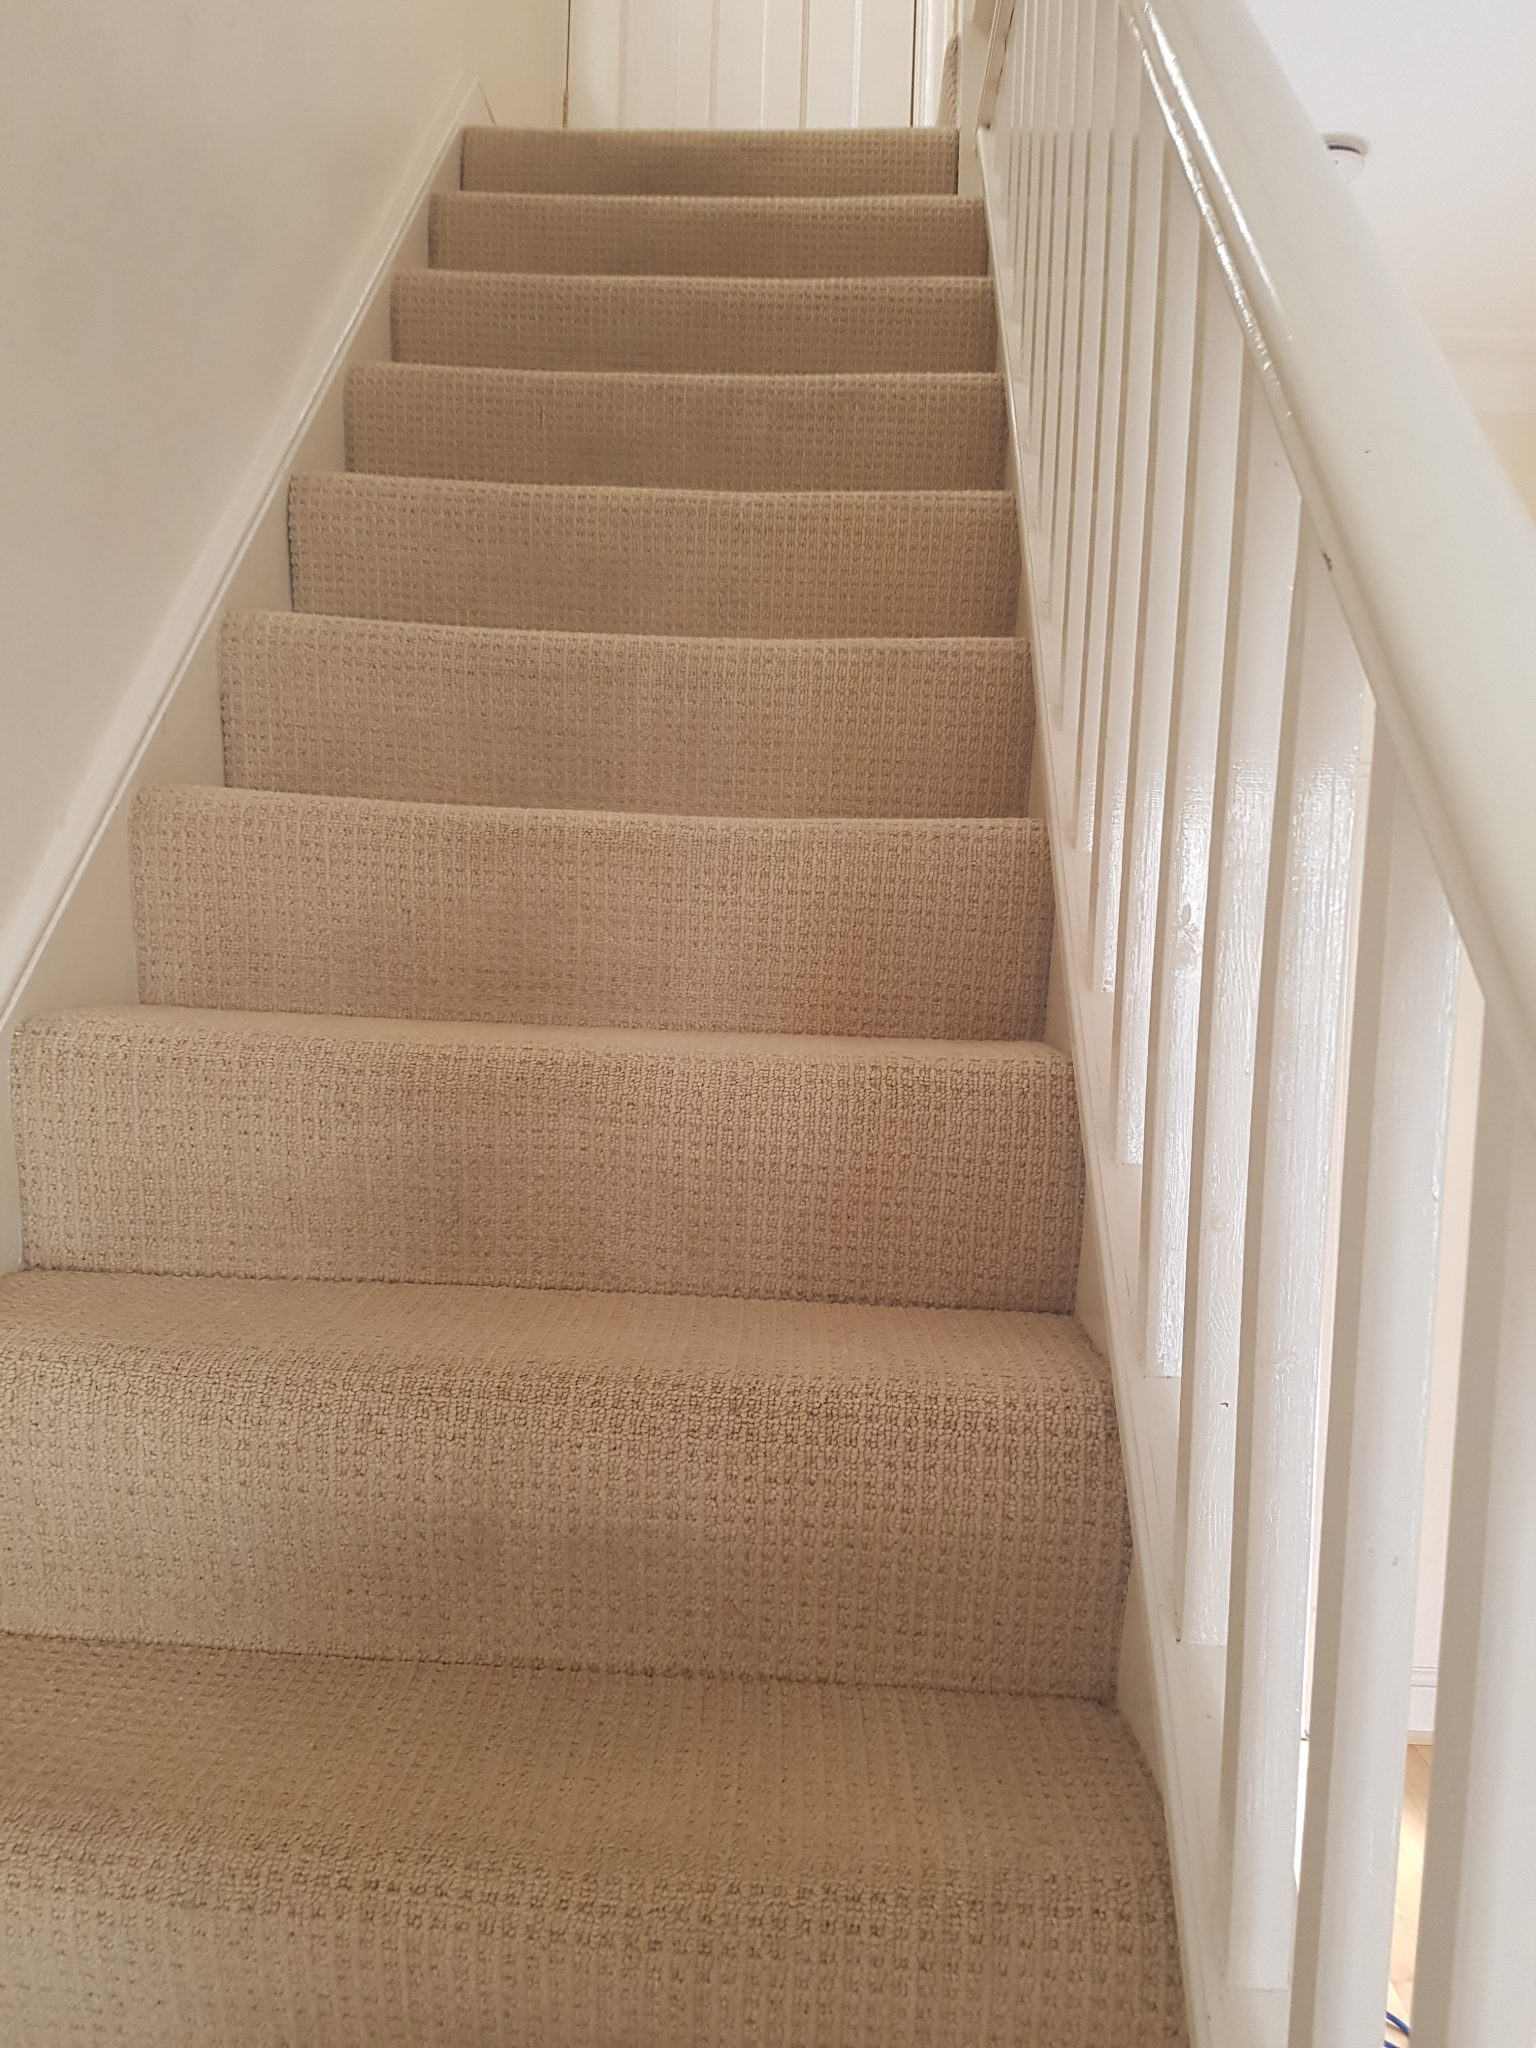 Carpet Cleaning In Cr2 Postcode Area South Croydon